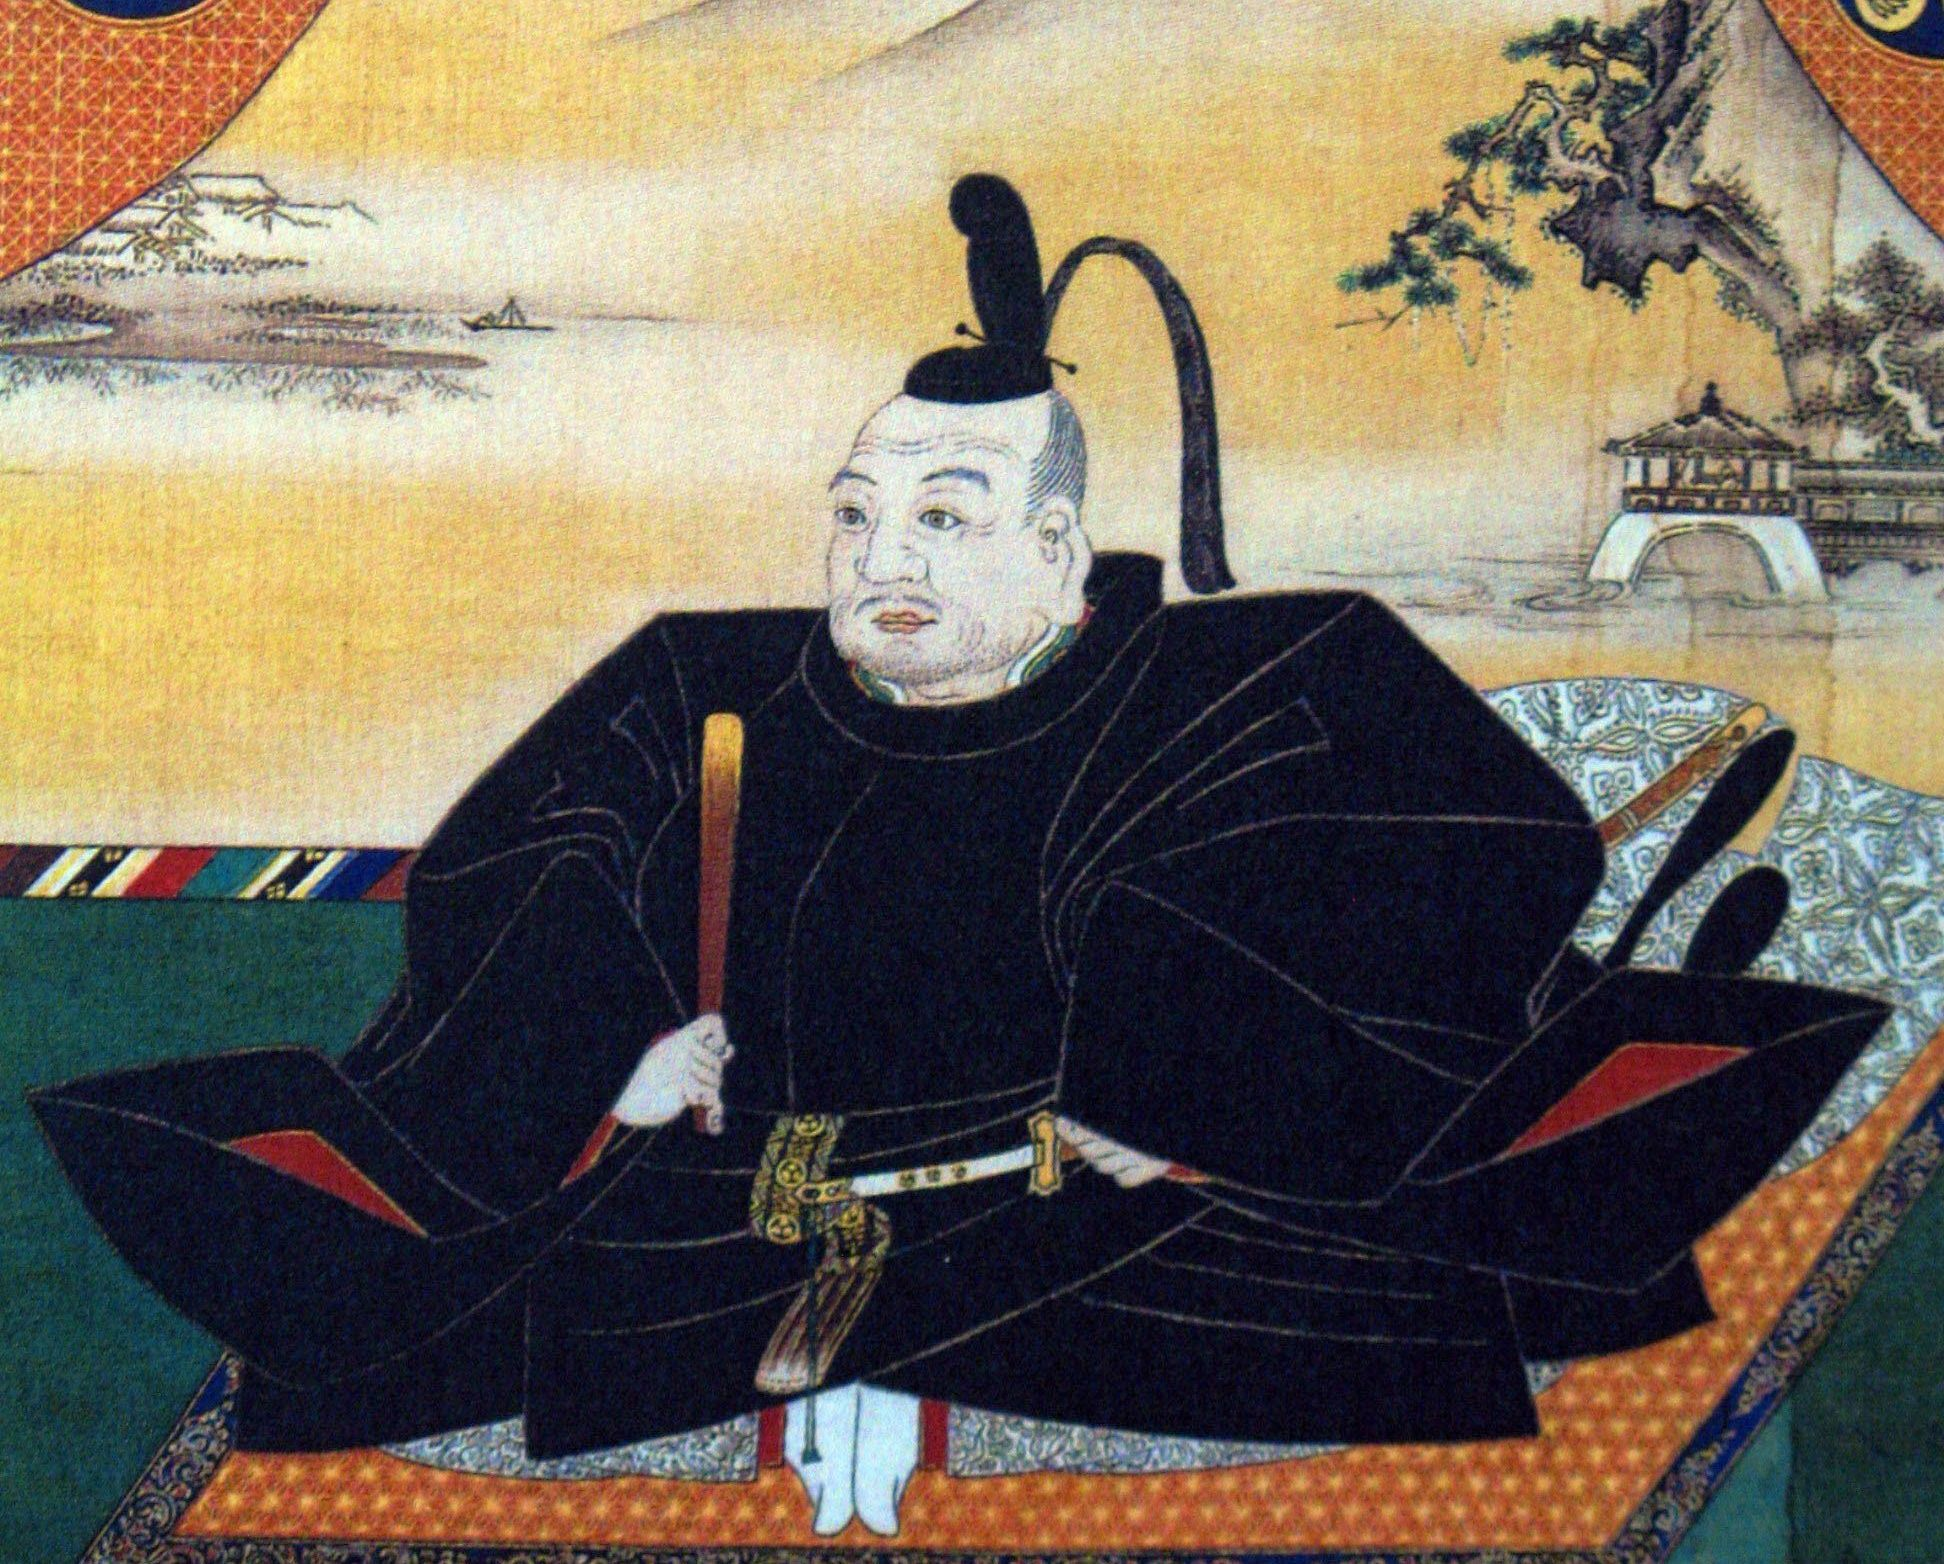 a history of the tokugawa period of japan The tokugawa (or edo) period brought 200 years of stability to japan the political system evolved into what historians call bakuhan, a combination of the terms bakufu and han (domains) to describe the government and society of the period.